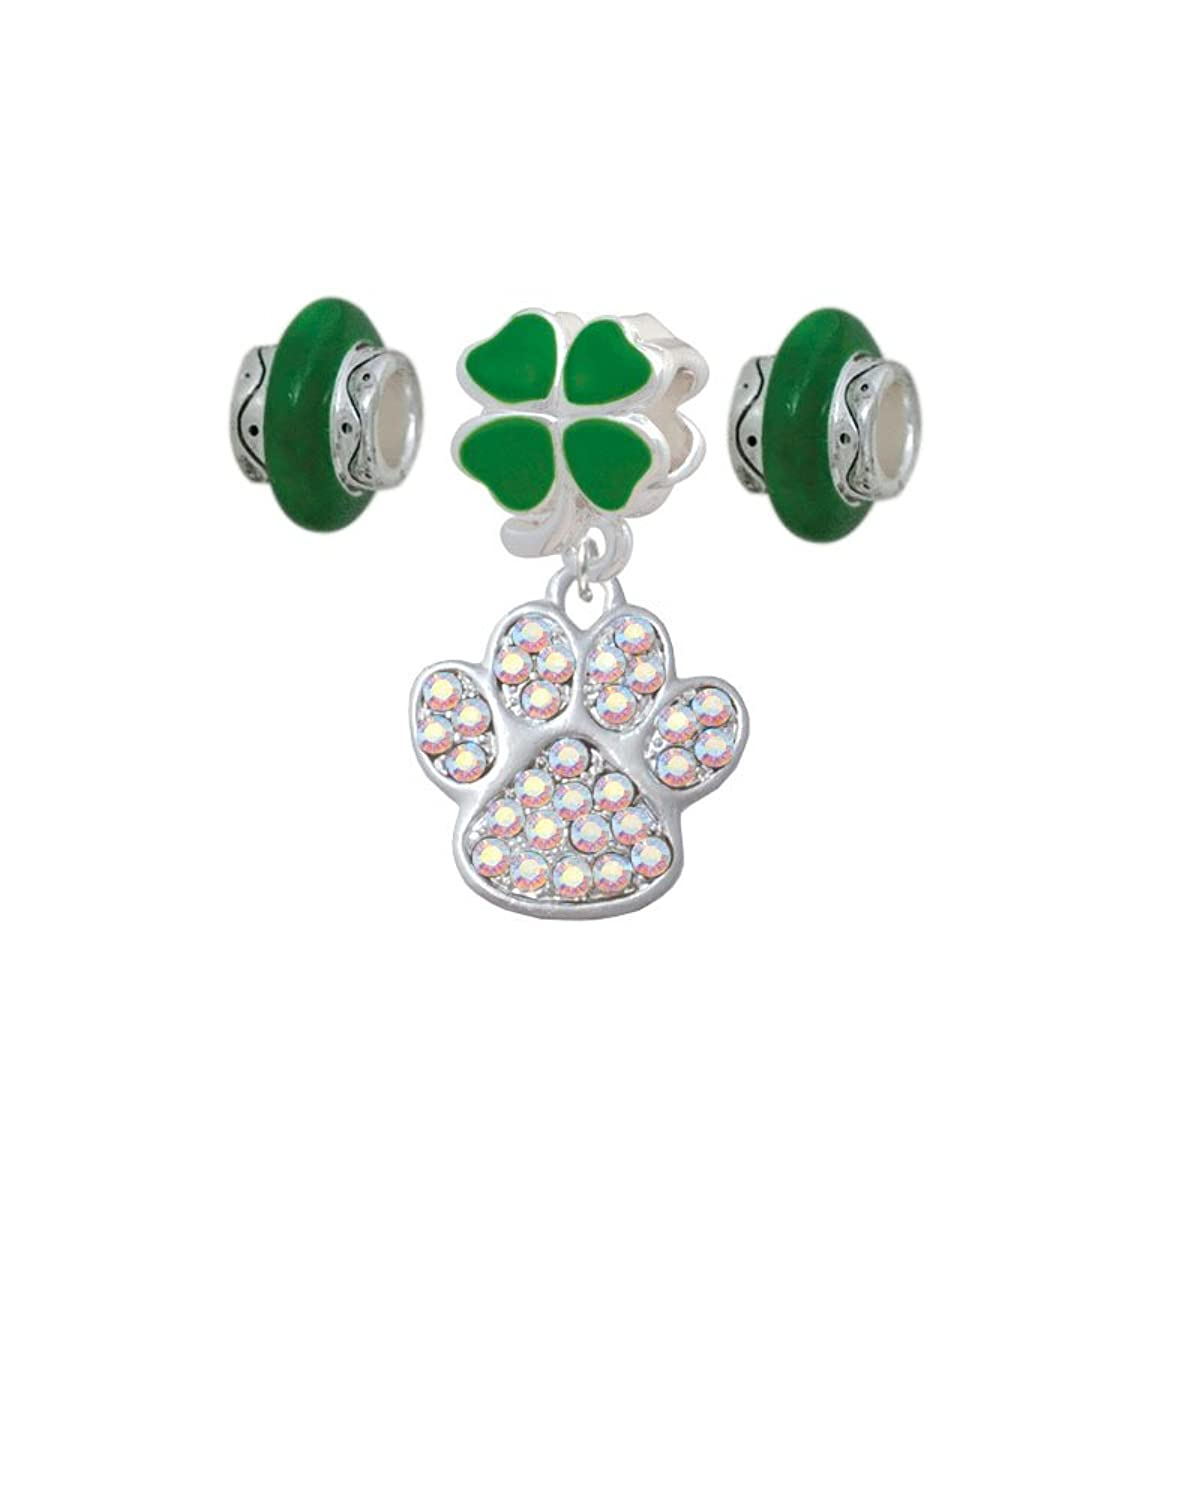 Large AB Crystal Paw Clover Charm Bead Hanger with Matching Beads (Set of 3)